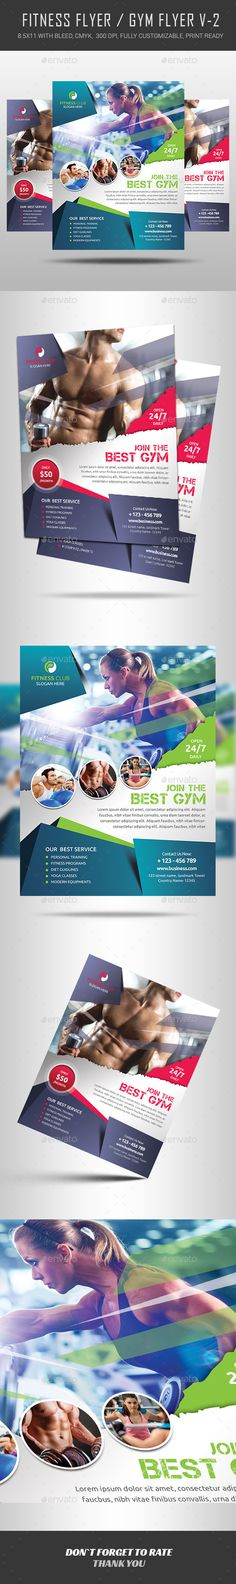 Fitness RollUp  Template Banners And Signage